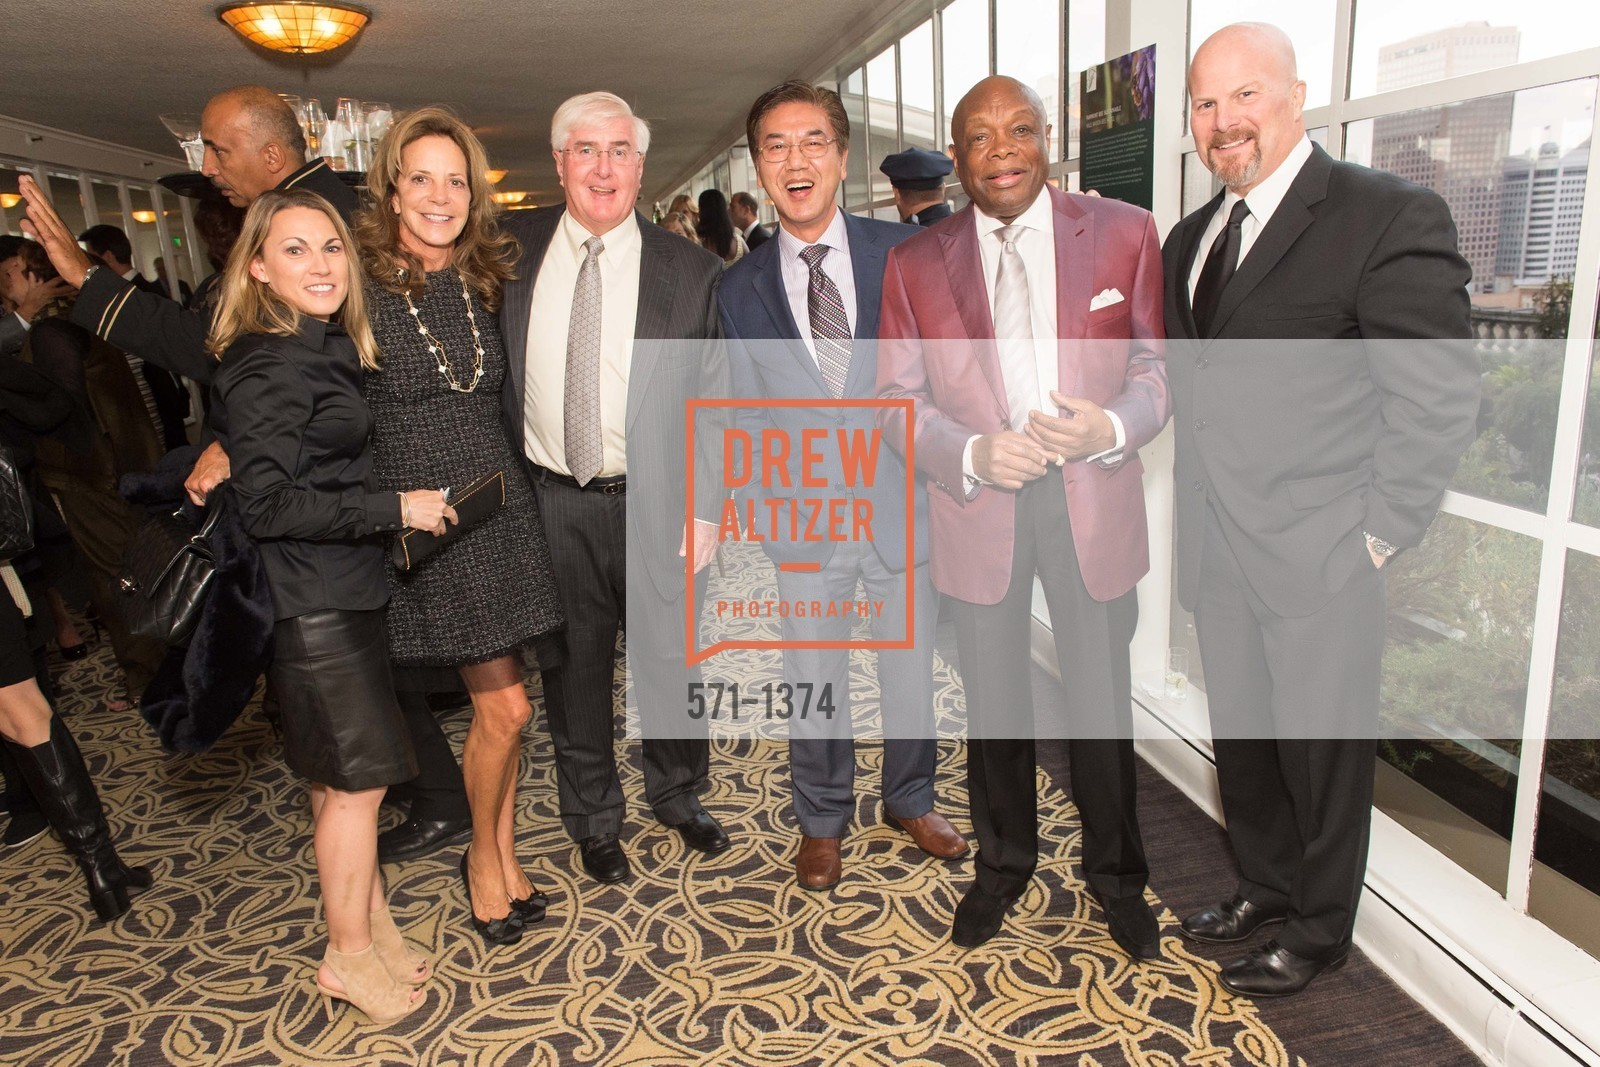 Gayle Conway, Ron Conway, Paul Tangsanich, Willie Brown, Photo #571-1374